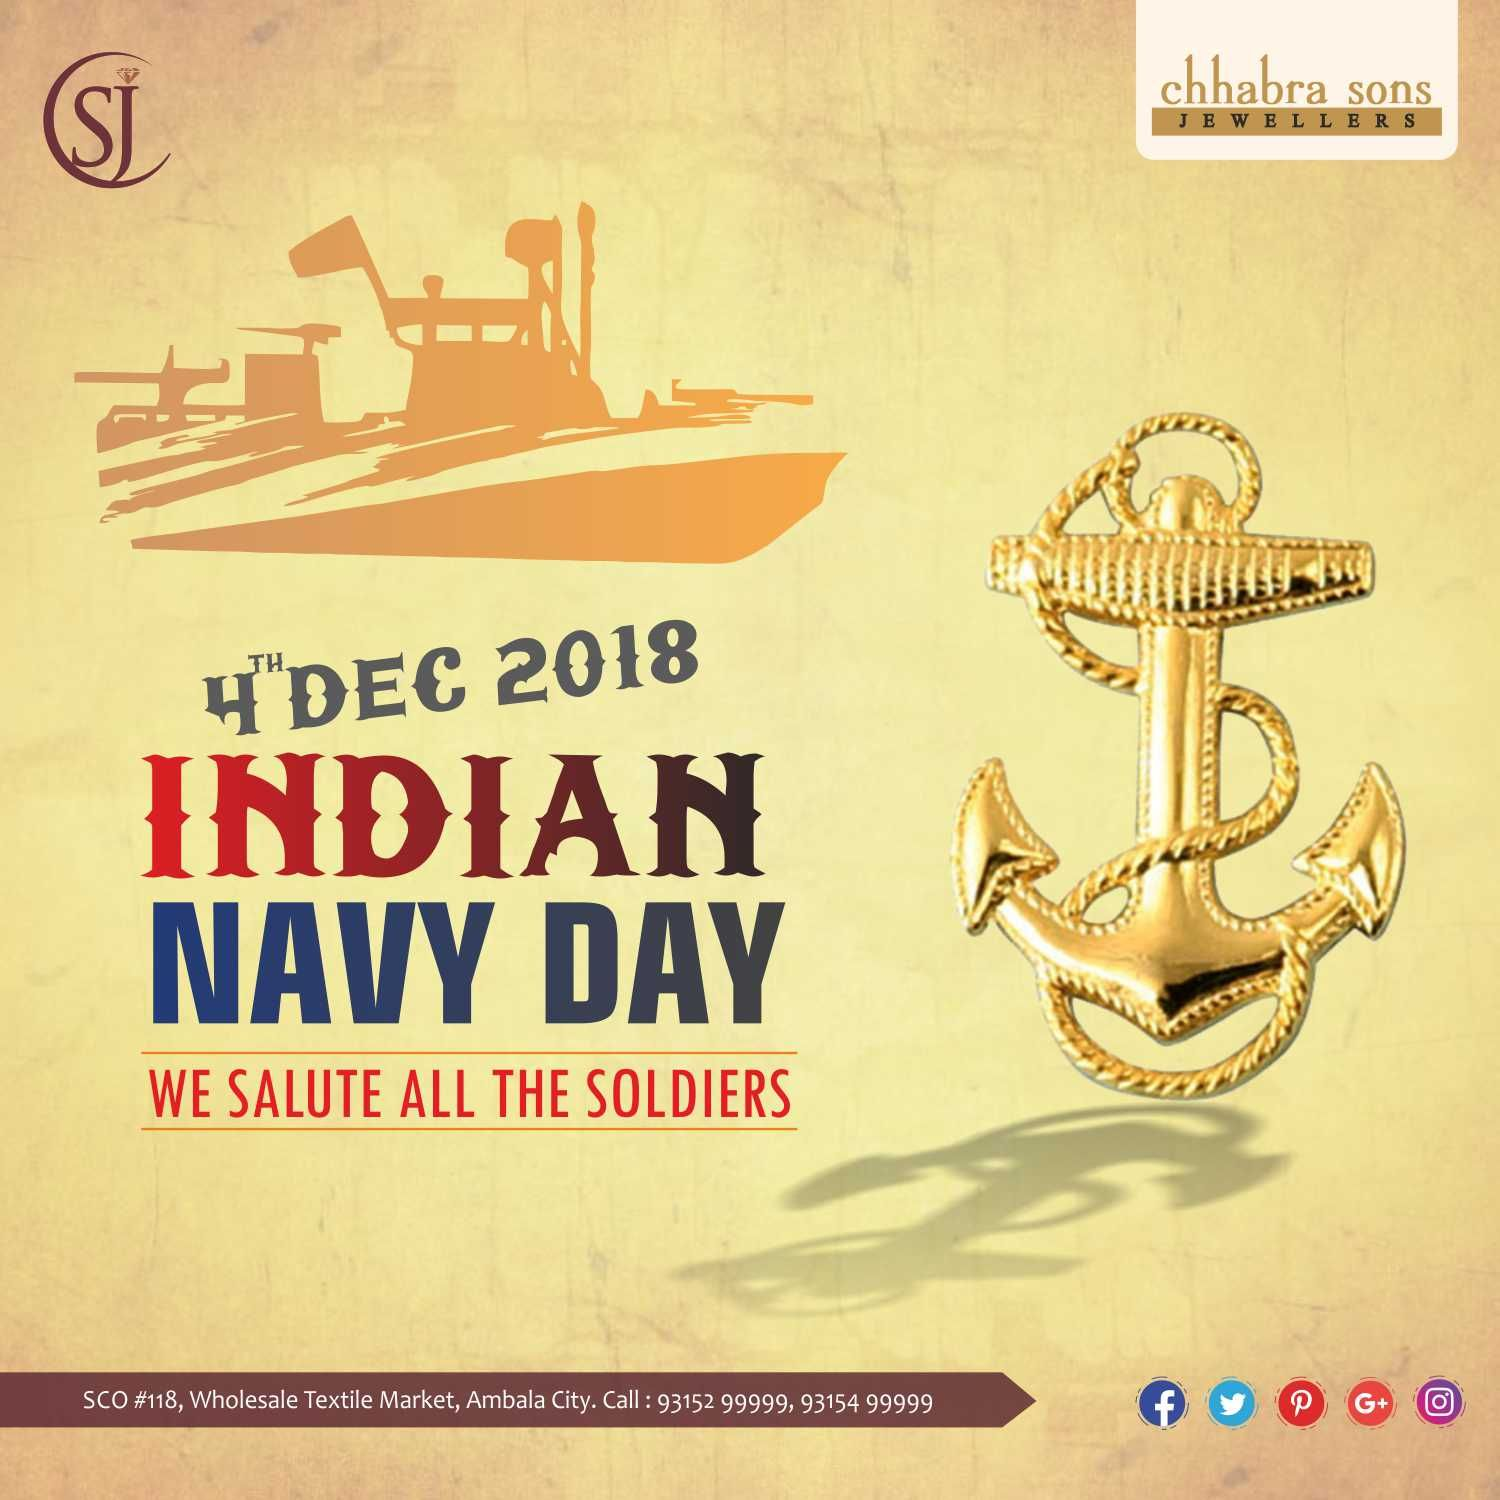 Indian Navy Day We Salute All The Soldiers Indiannavyday Navyday Chhabrasons Chhabrajeweller Csj Ambala Jewel Navy Day Indian Navy Day Indian Navy